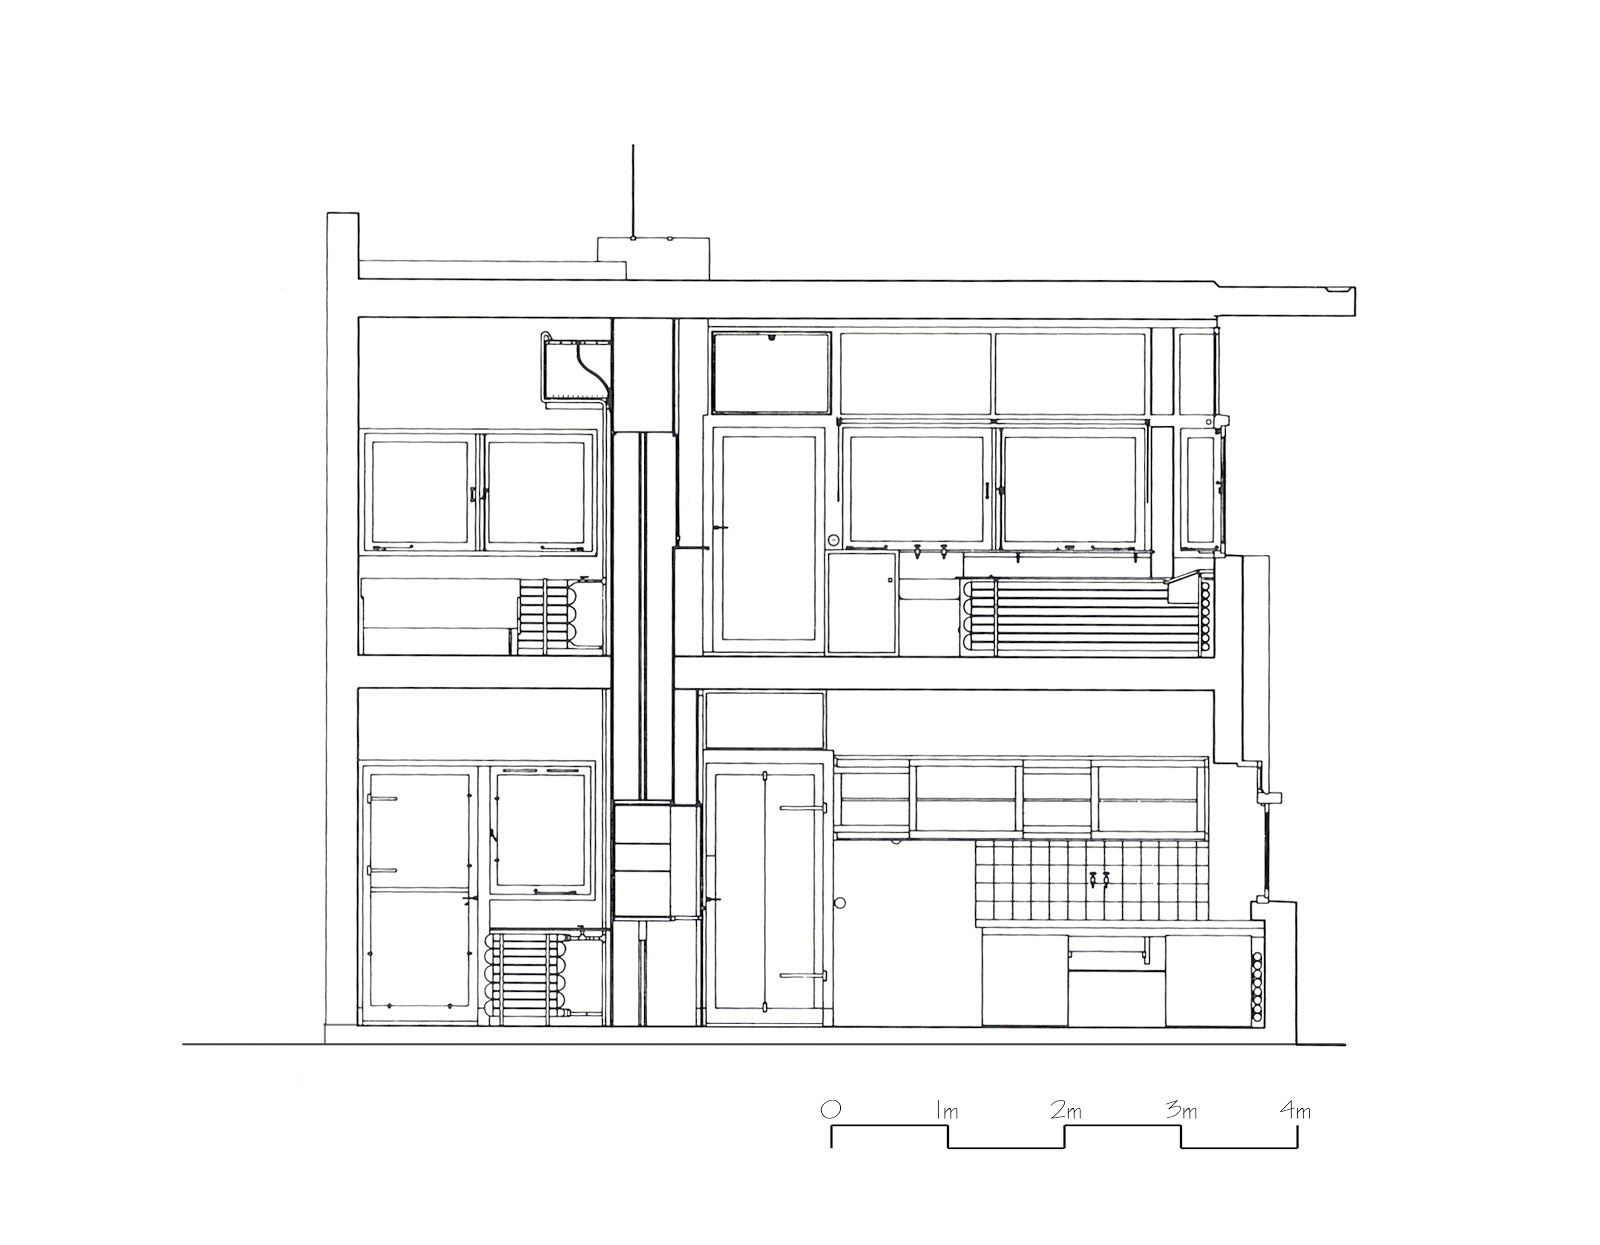 Charming Image Result For Schroder House Section | Schroder House | Pinterest |  Architecture